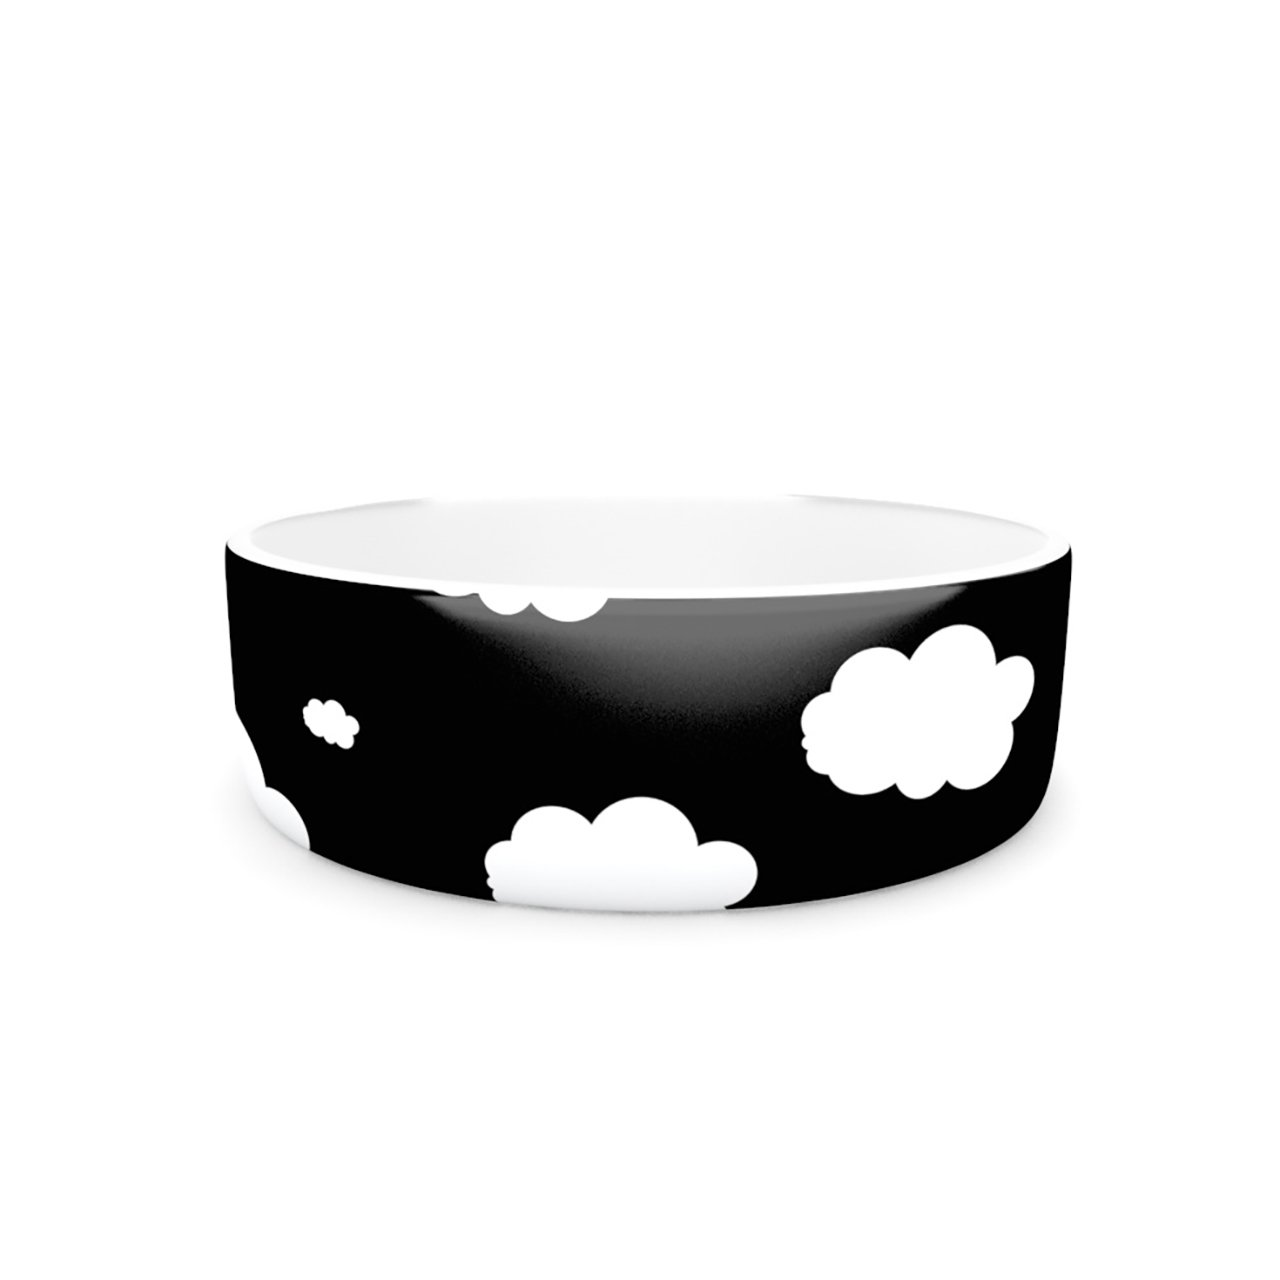 Kess InHouse Suzanne Carter Clouds  Pet Bowl, 7-Inch, Black White